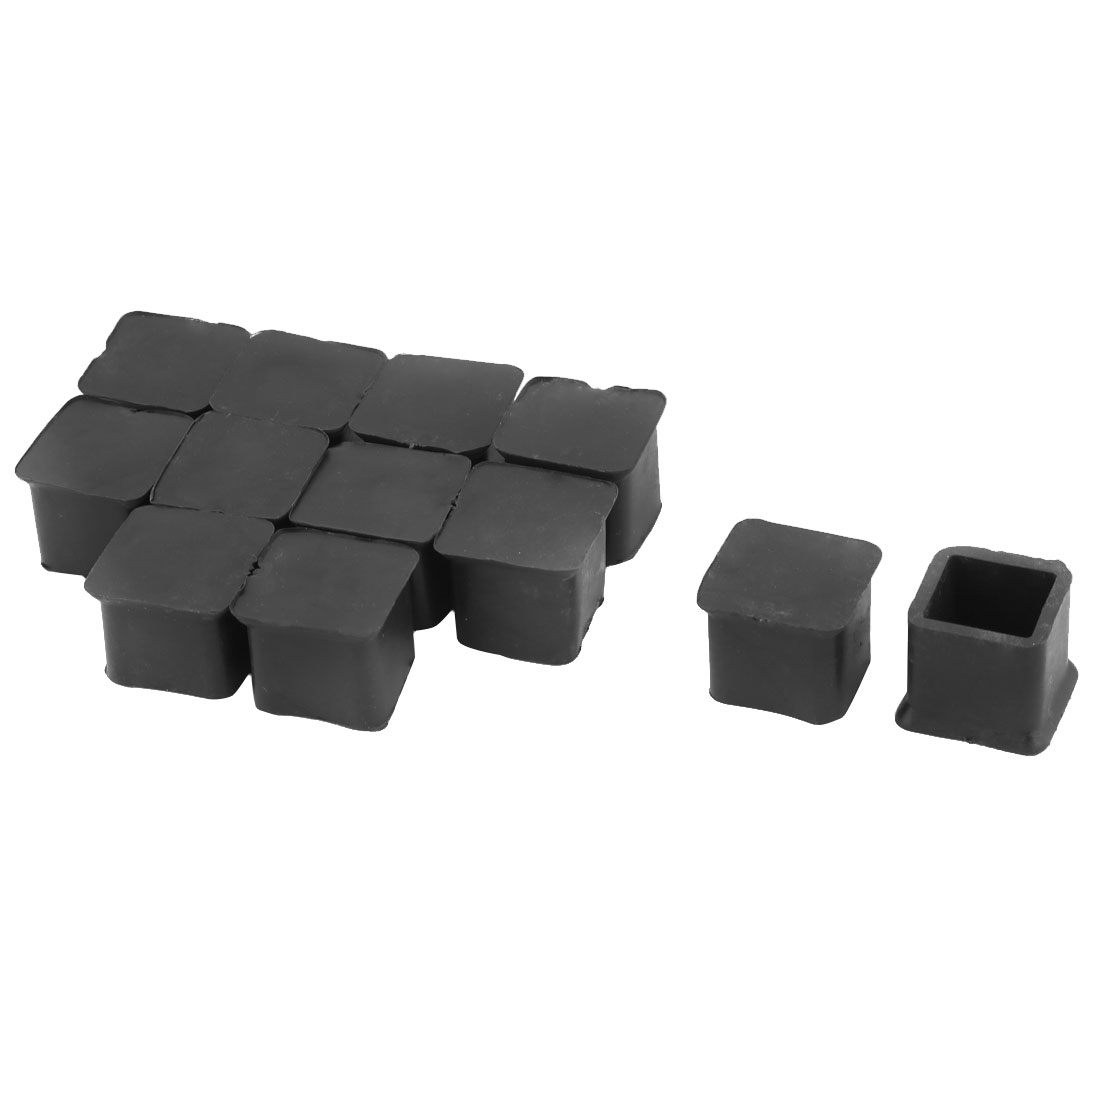 Home Rubber Square Anti Slip Chair Furniture Foot Cover Black 20 x 20mm 12 Pcs